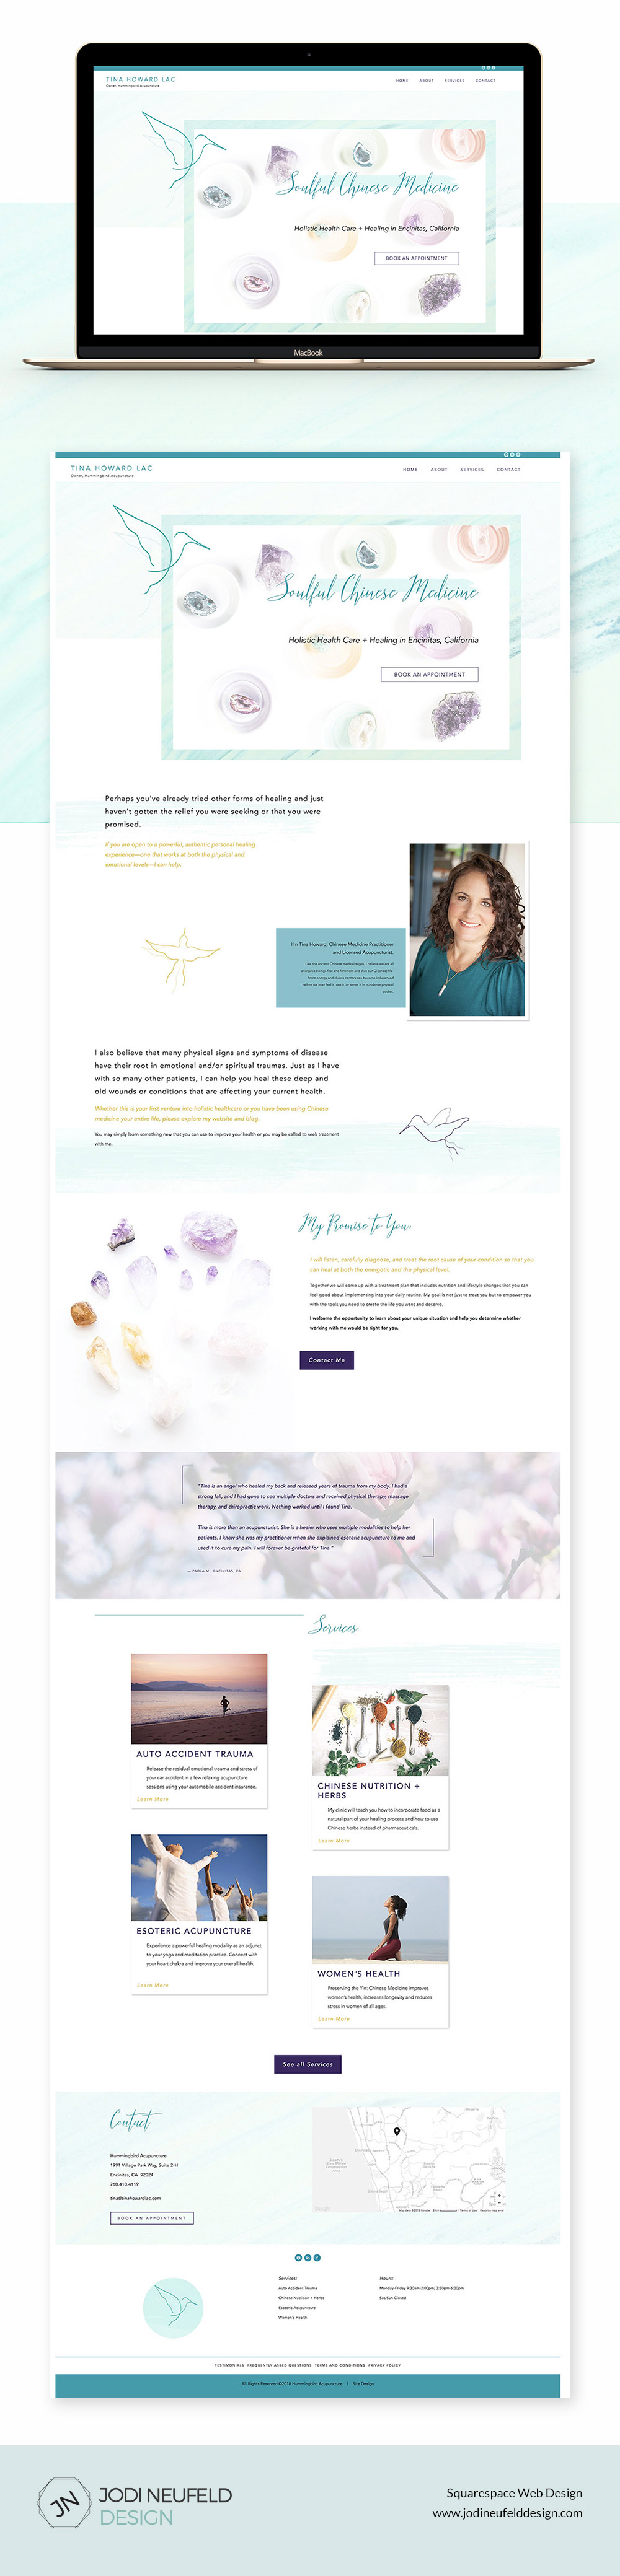 Tina Howard home page website design | Squarespace website design by Jodi Neufeld Design